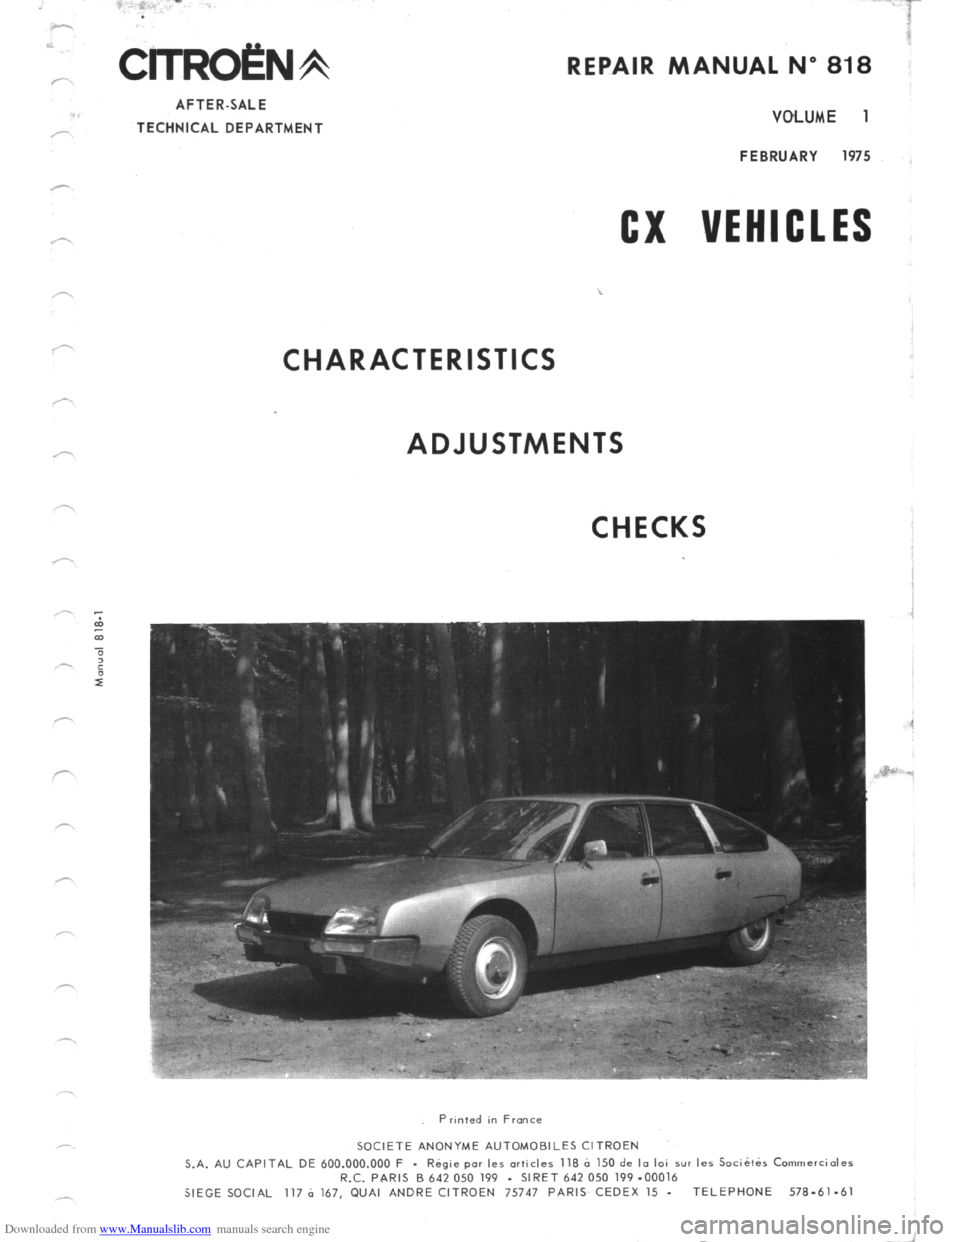 service manual 1989 citroen cx manual transmission schematic 1989 citroen cx blower motor. Black Bedroom Furniture Sets. Home Design Ideas